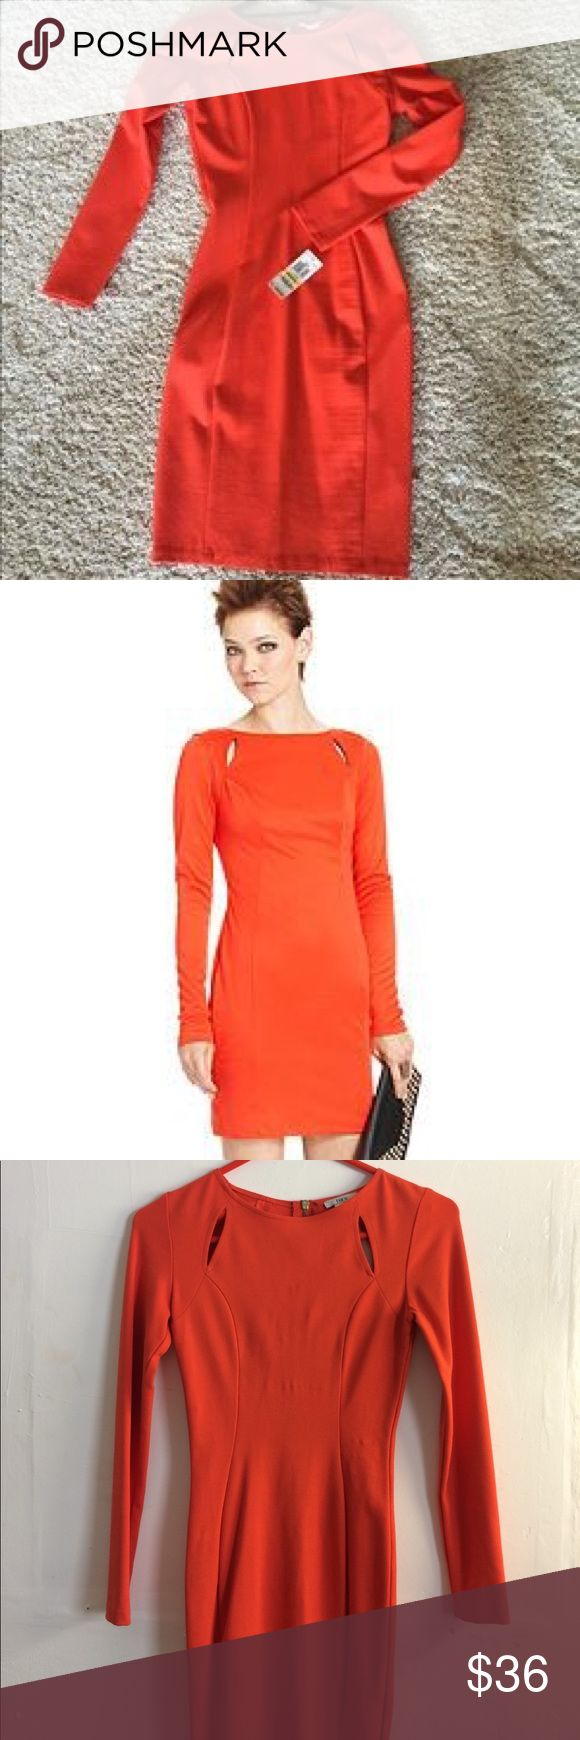 Orange bandage long sleeve dress XS Beautiful classy chic orange dress. Perfect for any occasion. Bar III Dresses